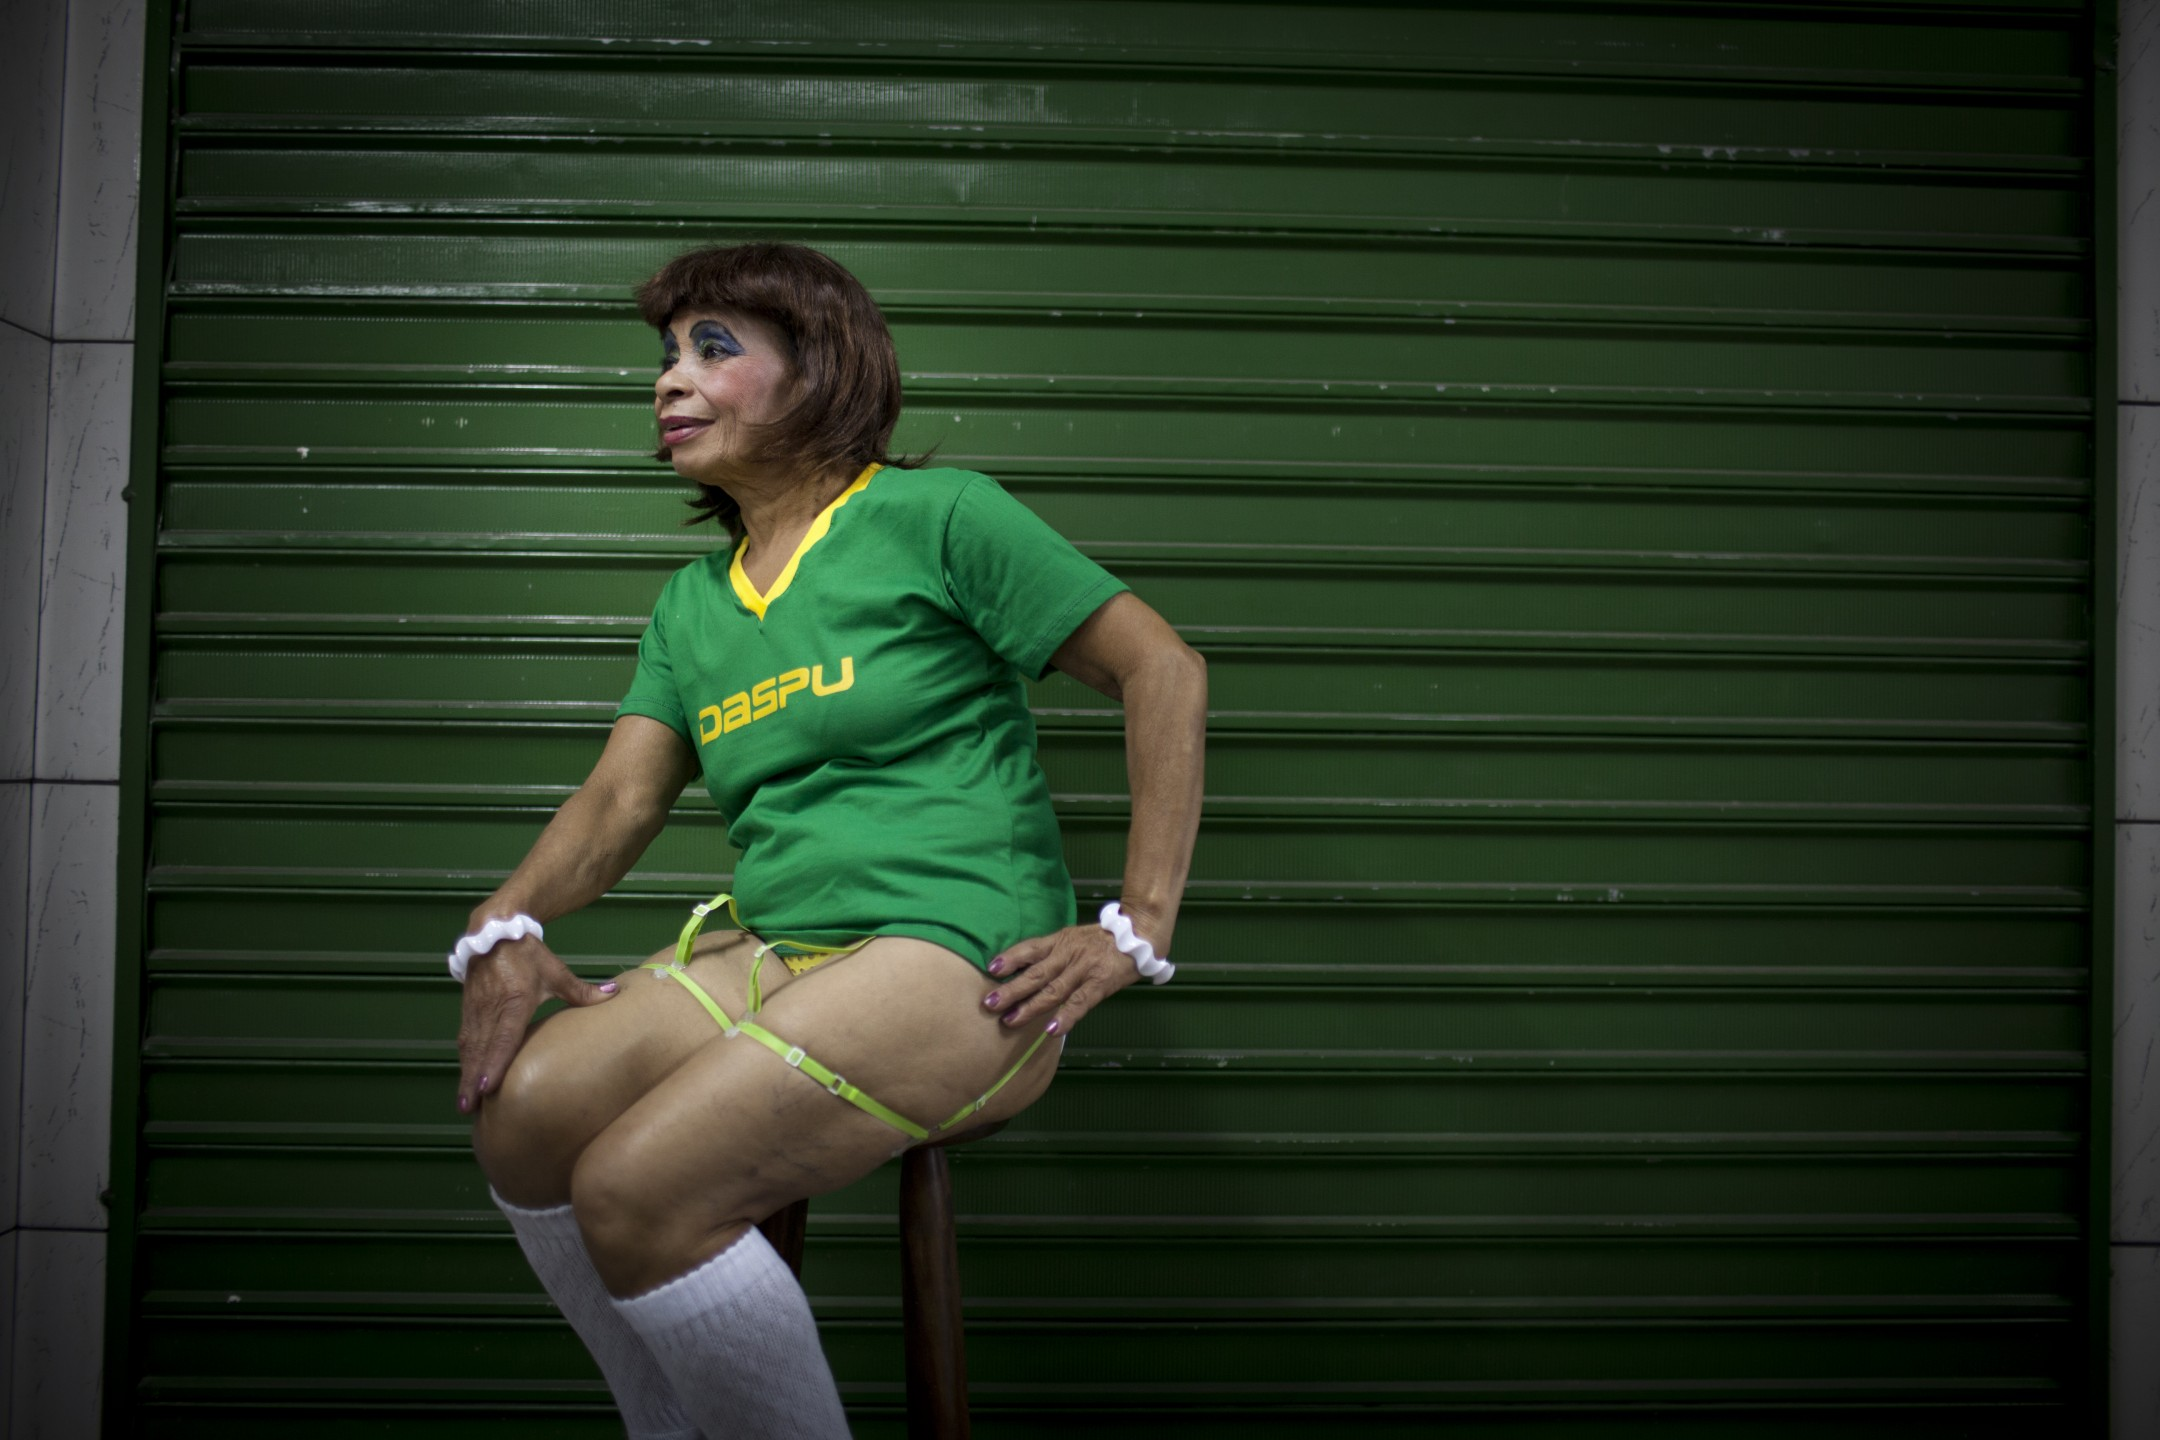 WK World Cup voetbal prostituees